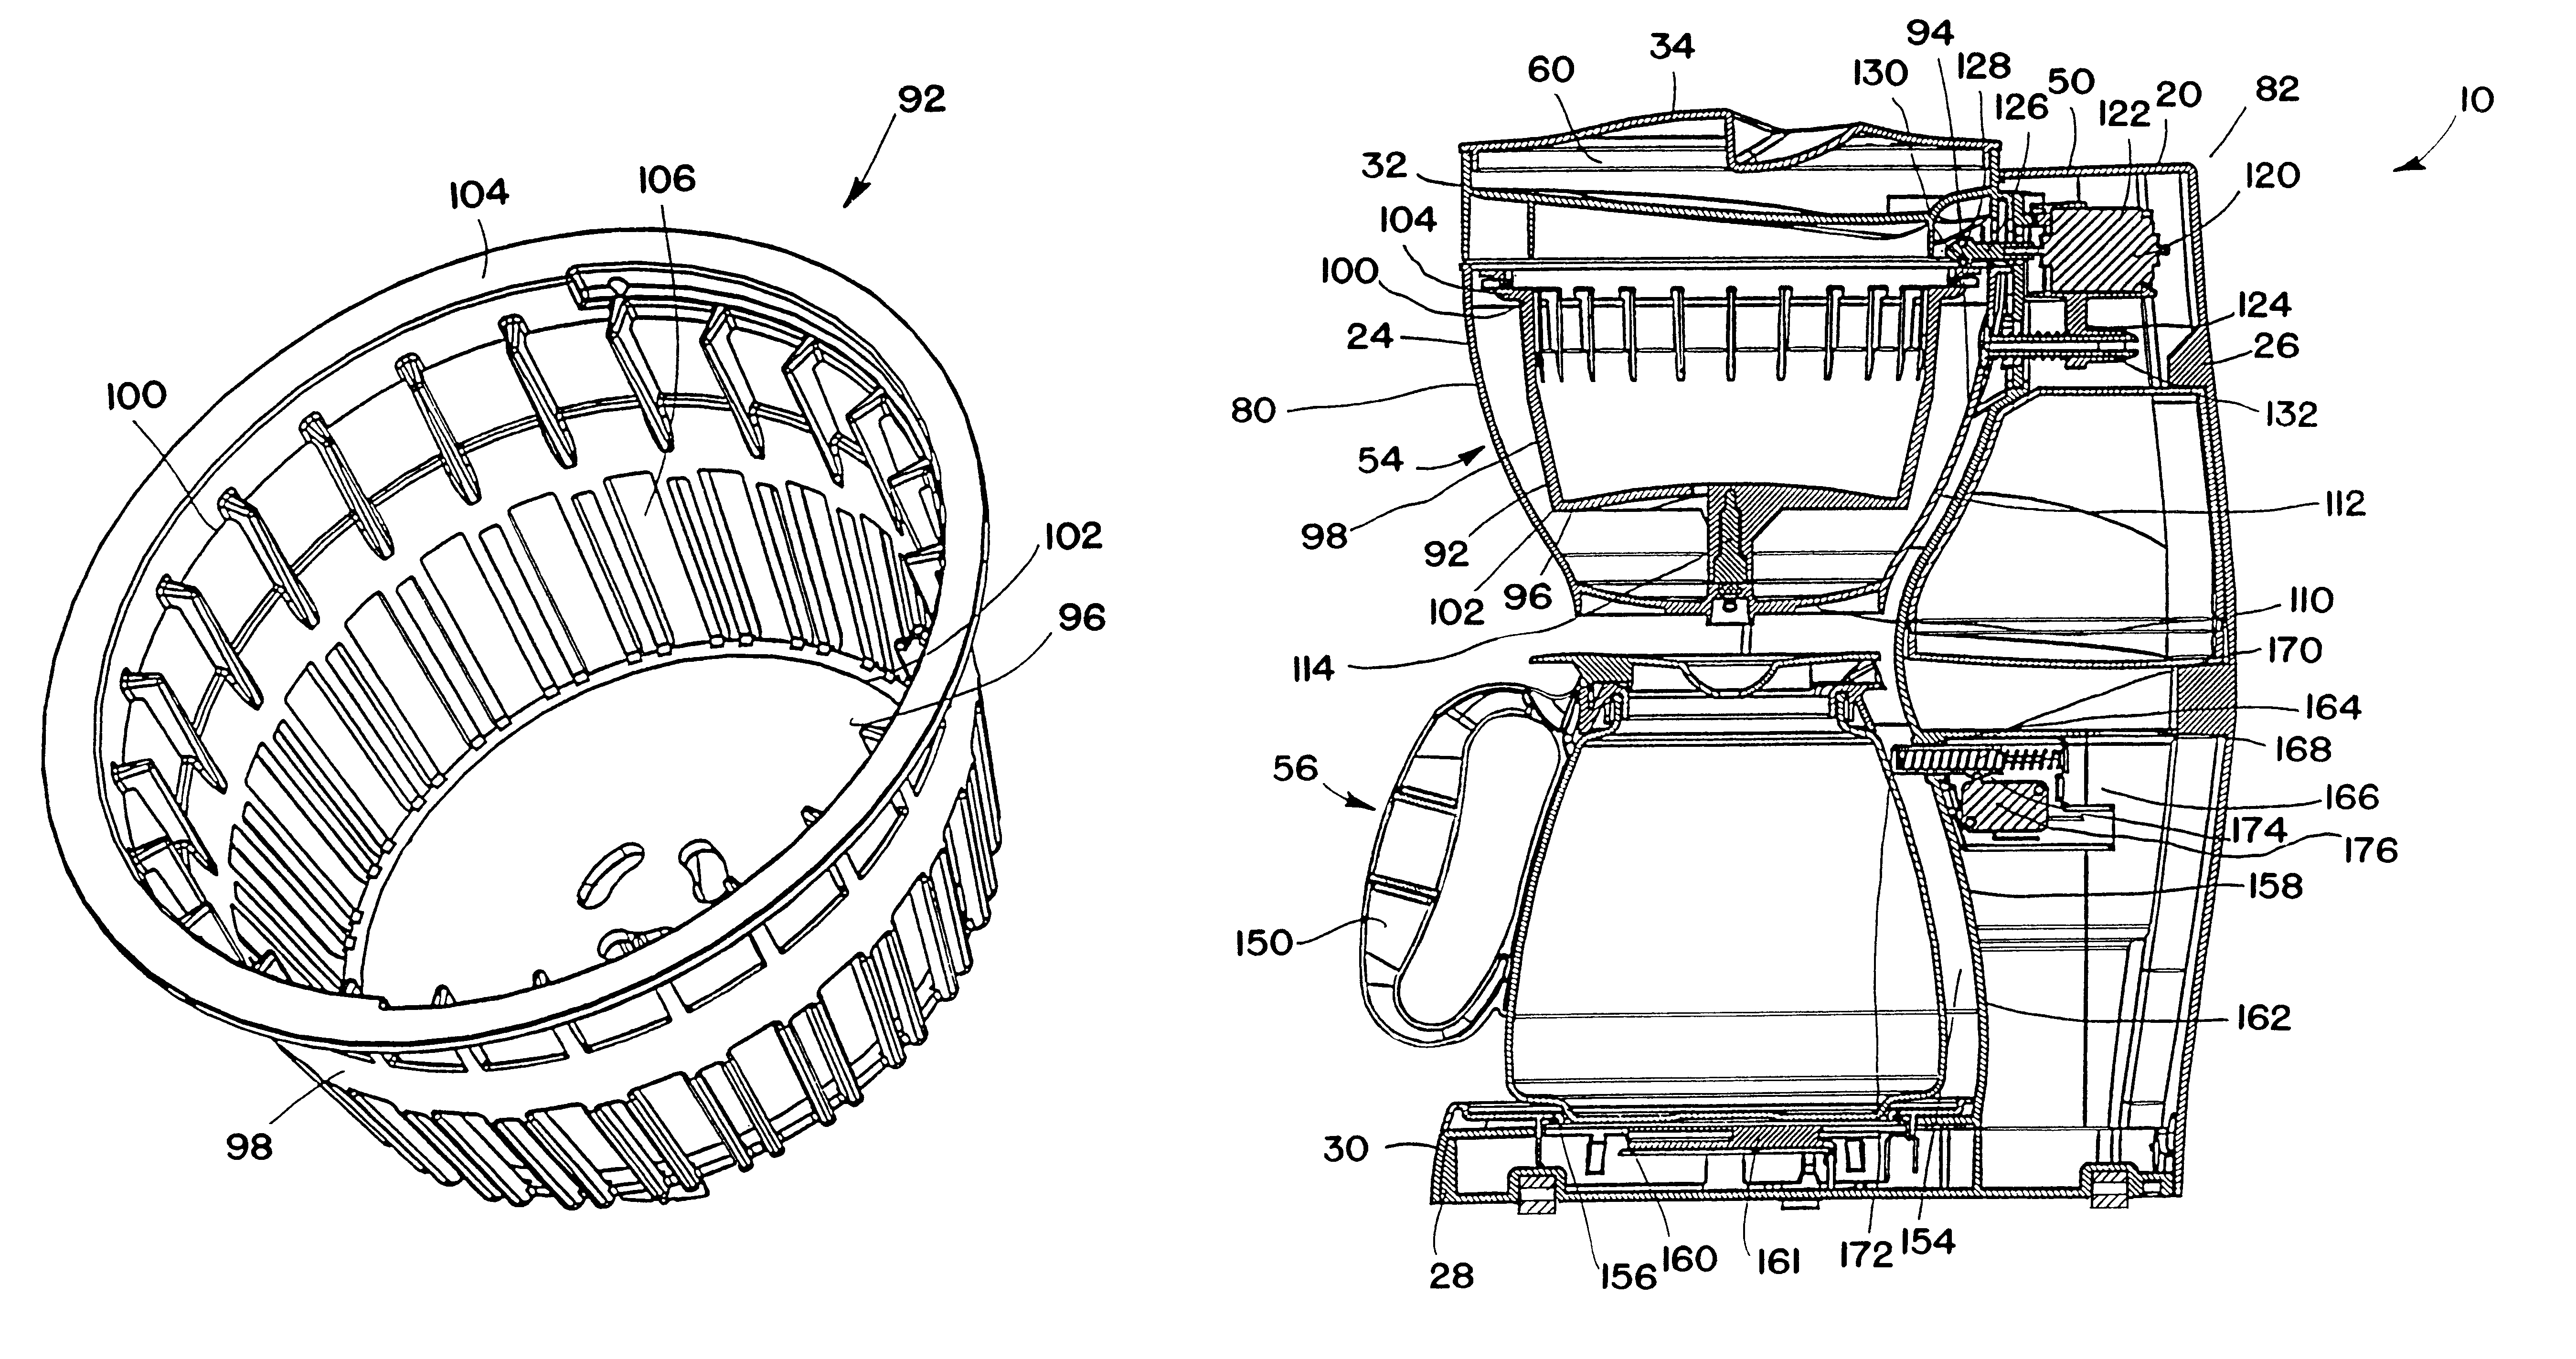 Keurig Coffee Maker Exploded View : Patent US6532862 - Coffee maker - Google Patents